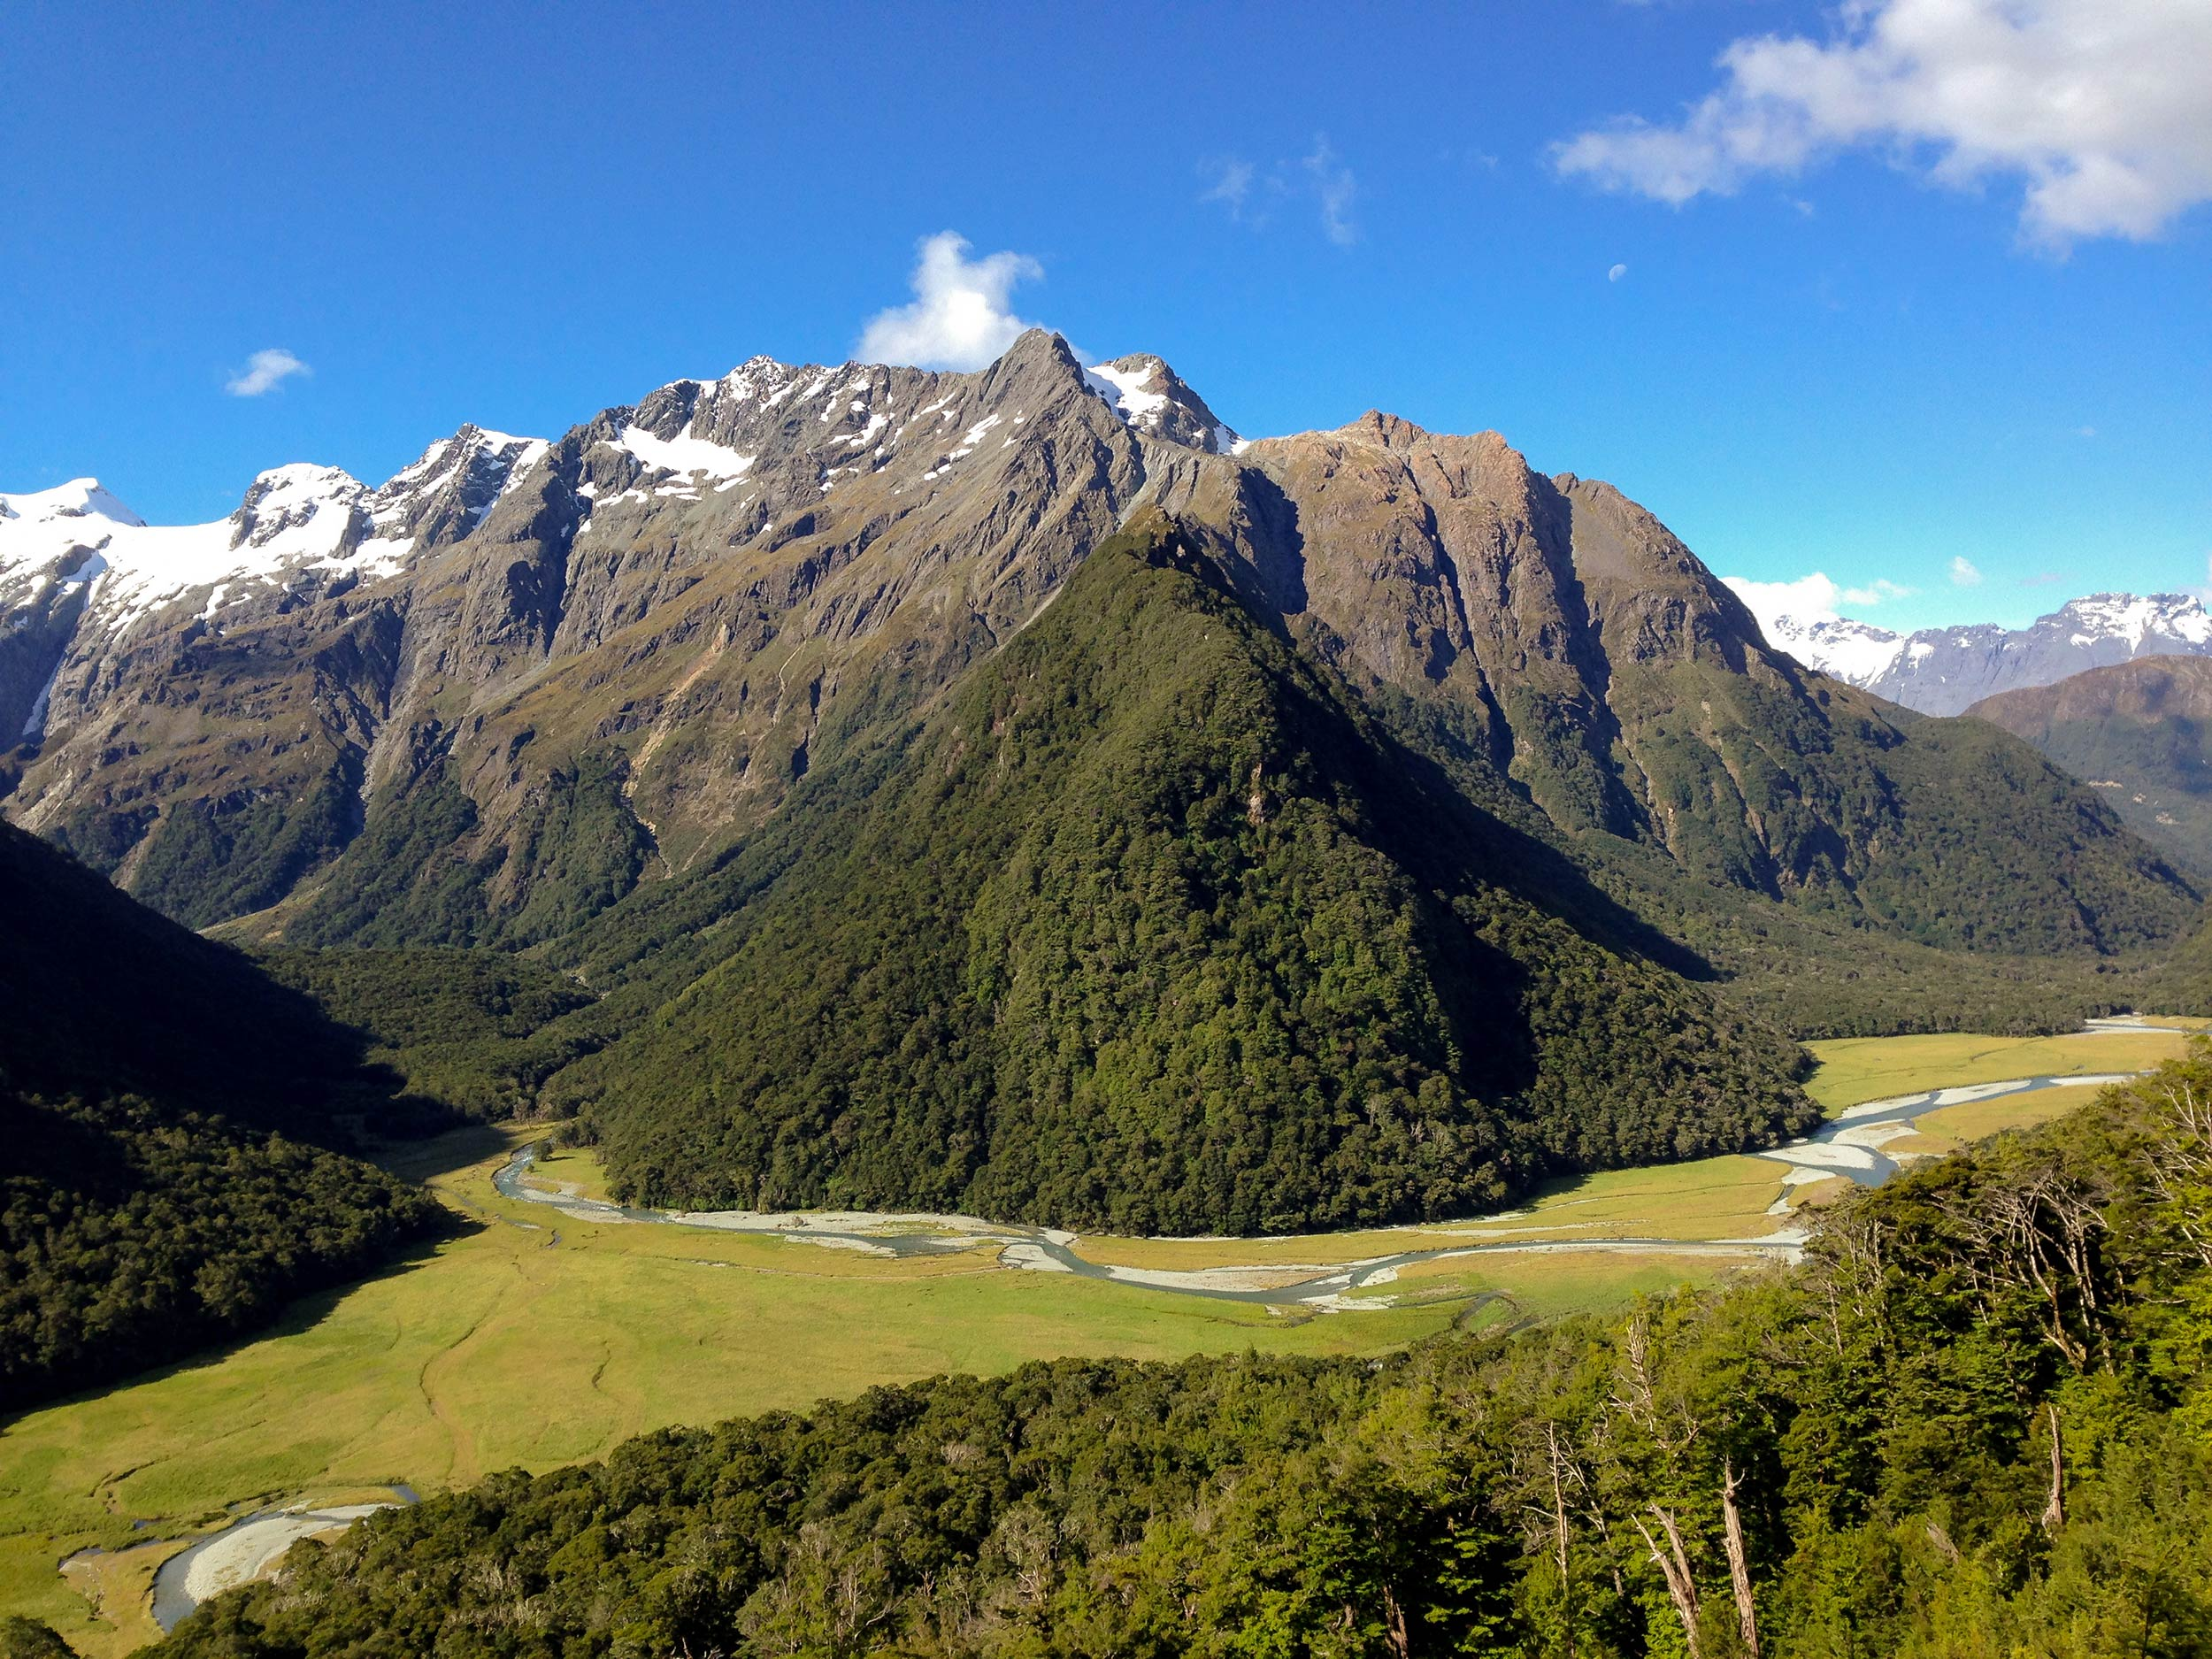 routeburn_track_looking_down_on_valley_final_campground.jpg